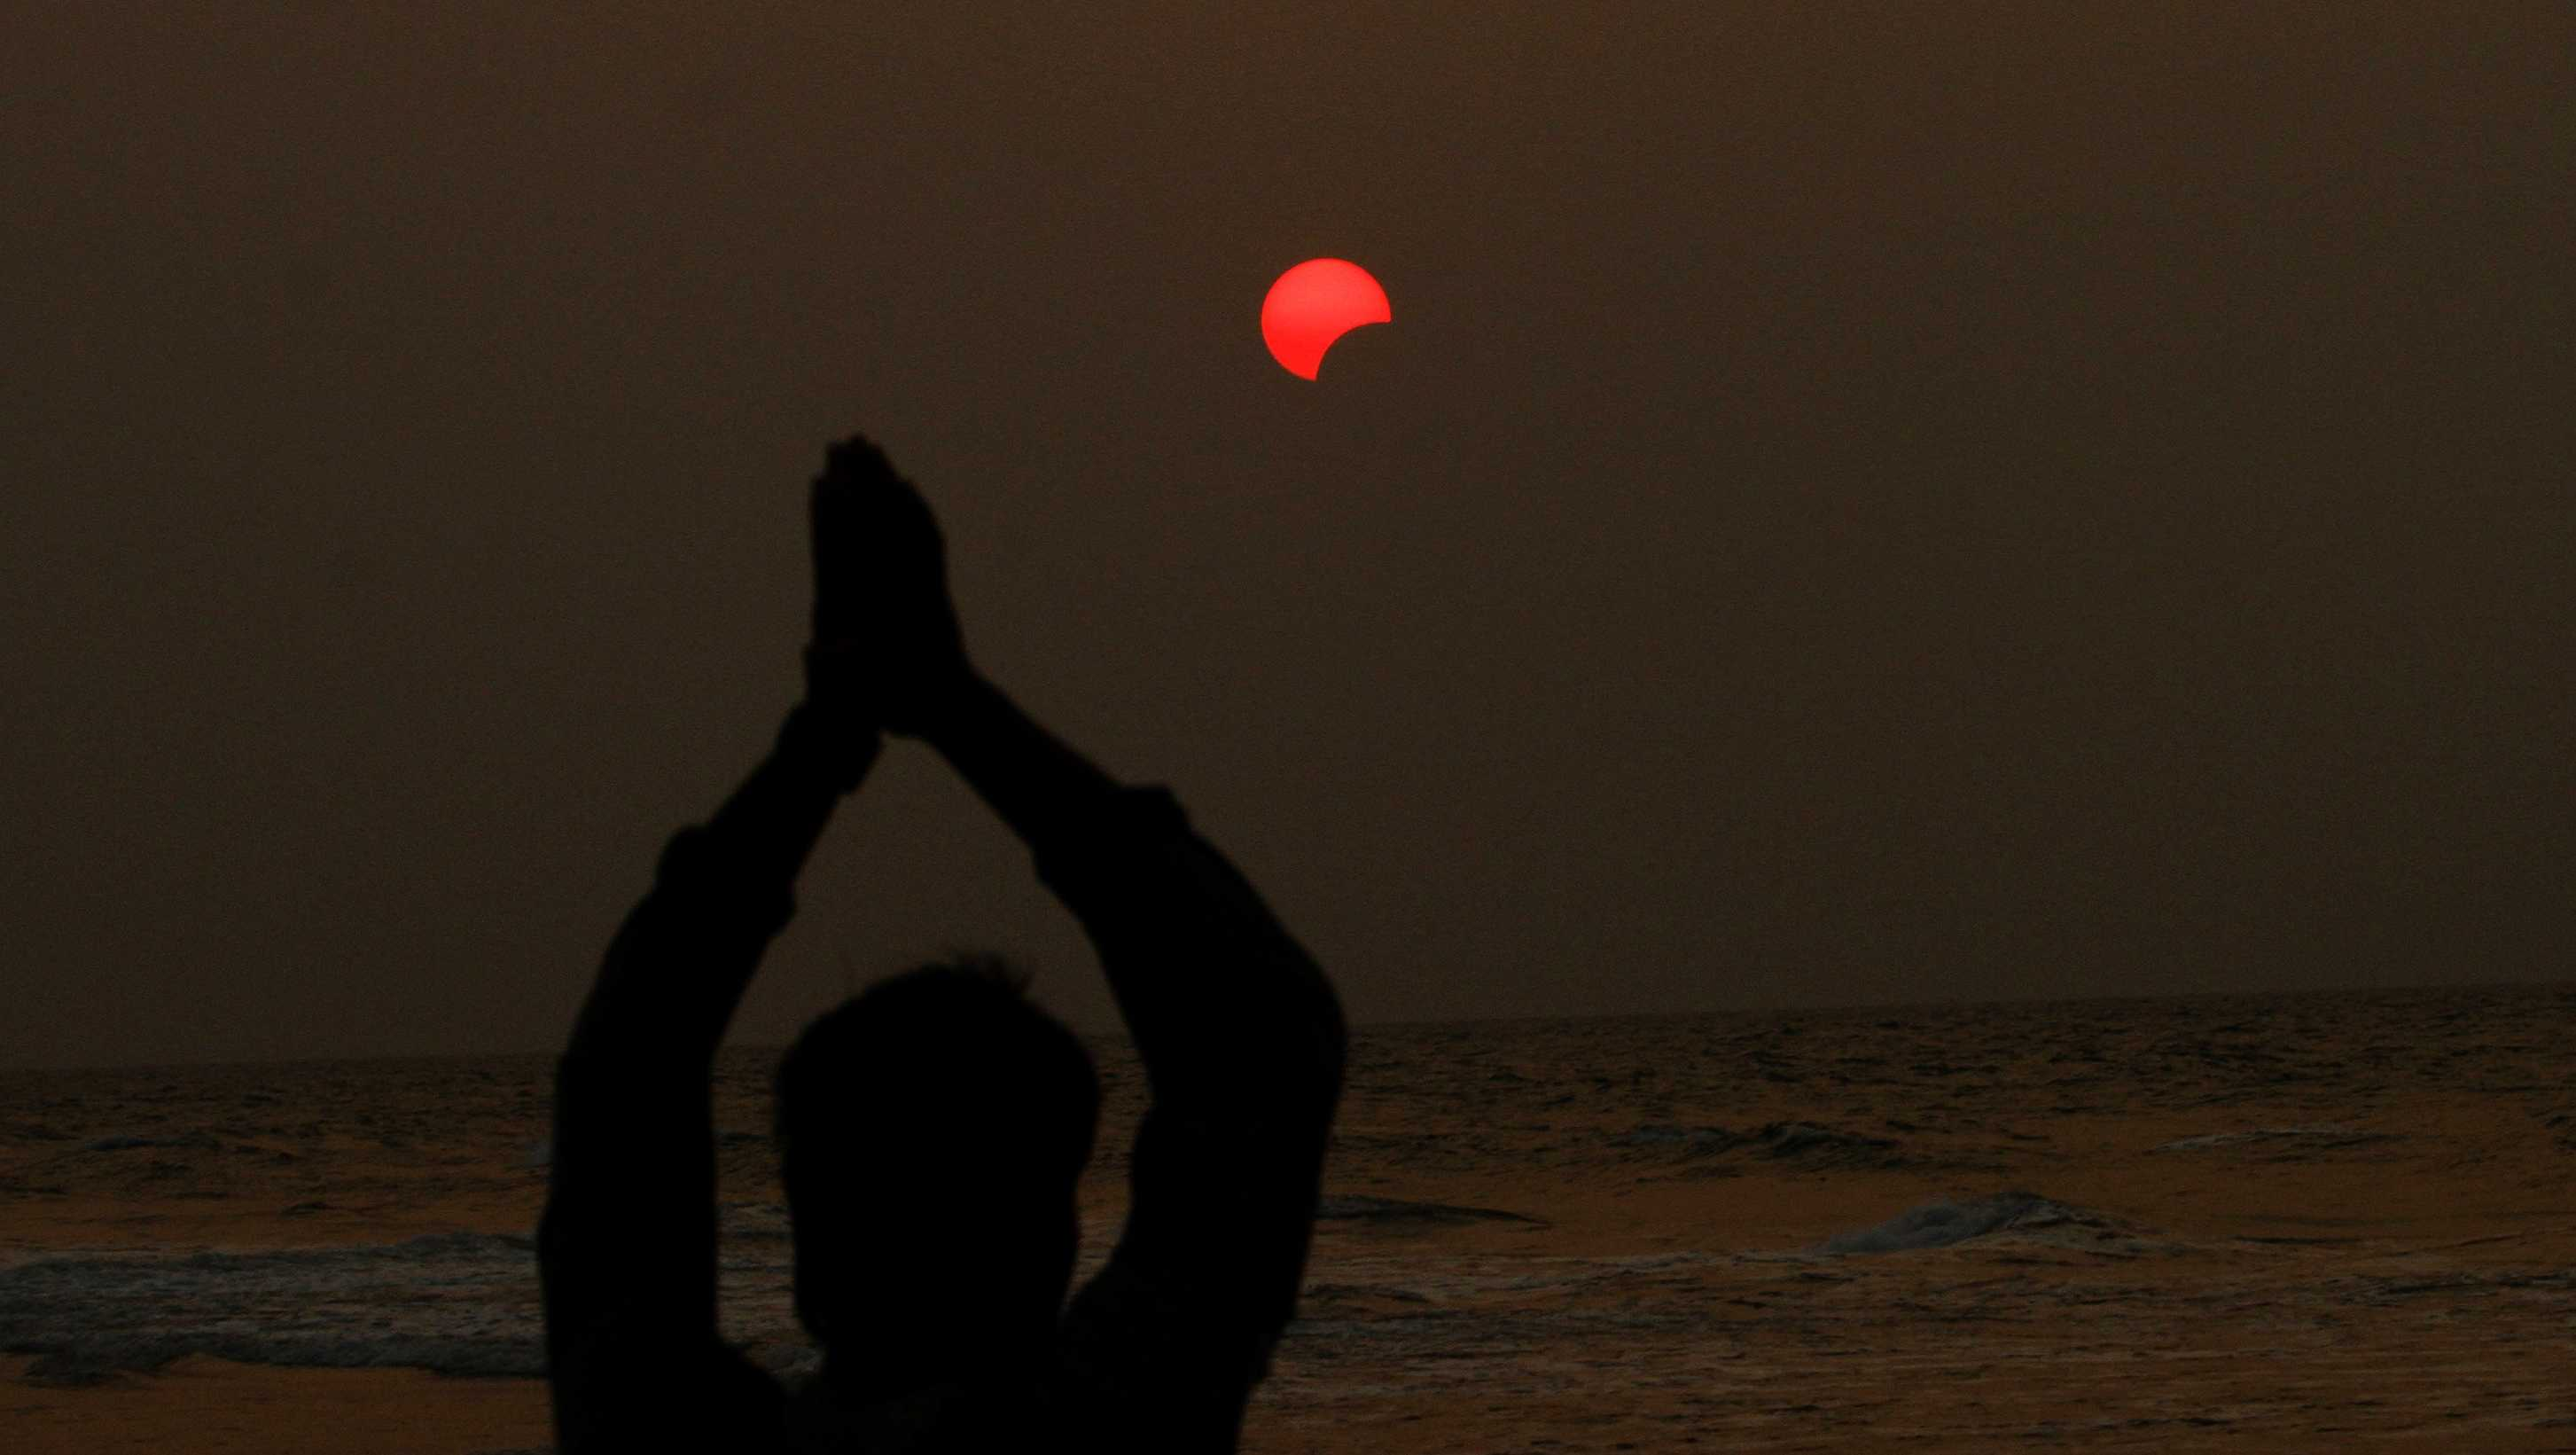 A fisherman prays during a partial solar eclipse in the sky over Bay of Bengal in Konark, 37 miles from the eastern Indian city Bhubaneswar, on Wednesday, March 9, 2016.